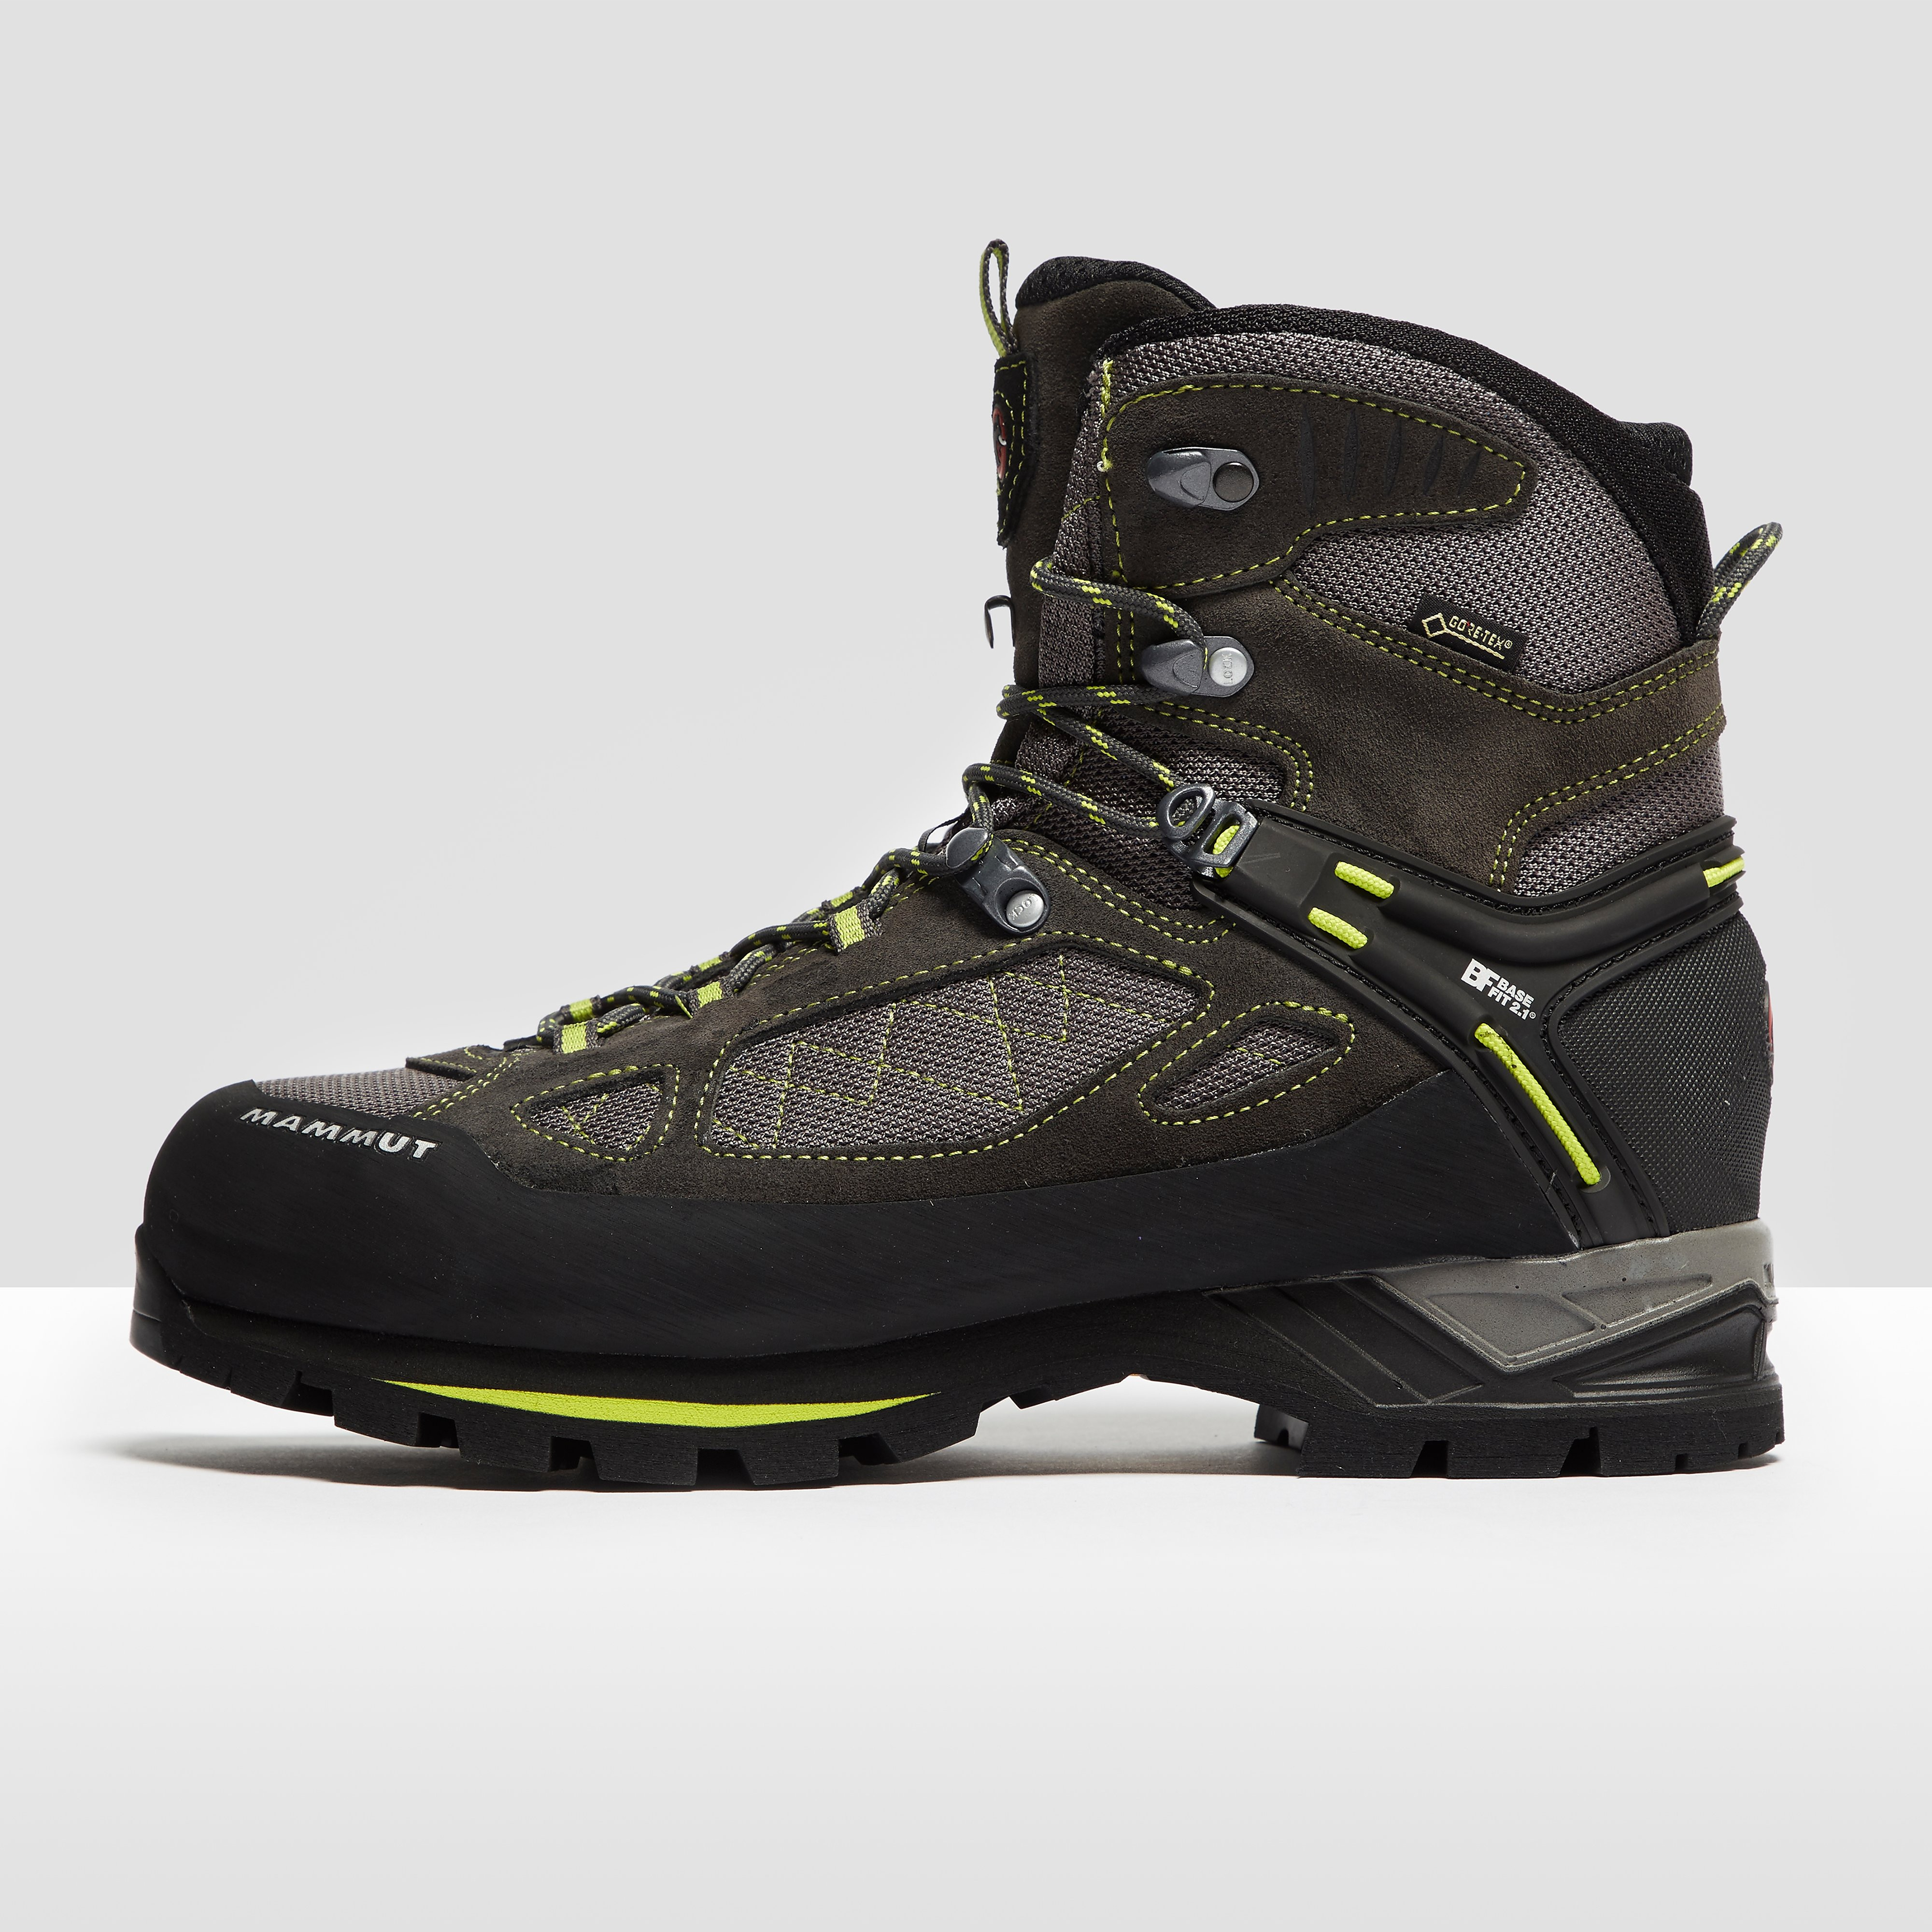 Mammut COMFORT GUIDE HIGH GTX SURROUND MEN'S WALKING BOOTS